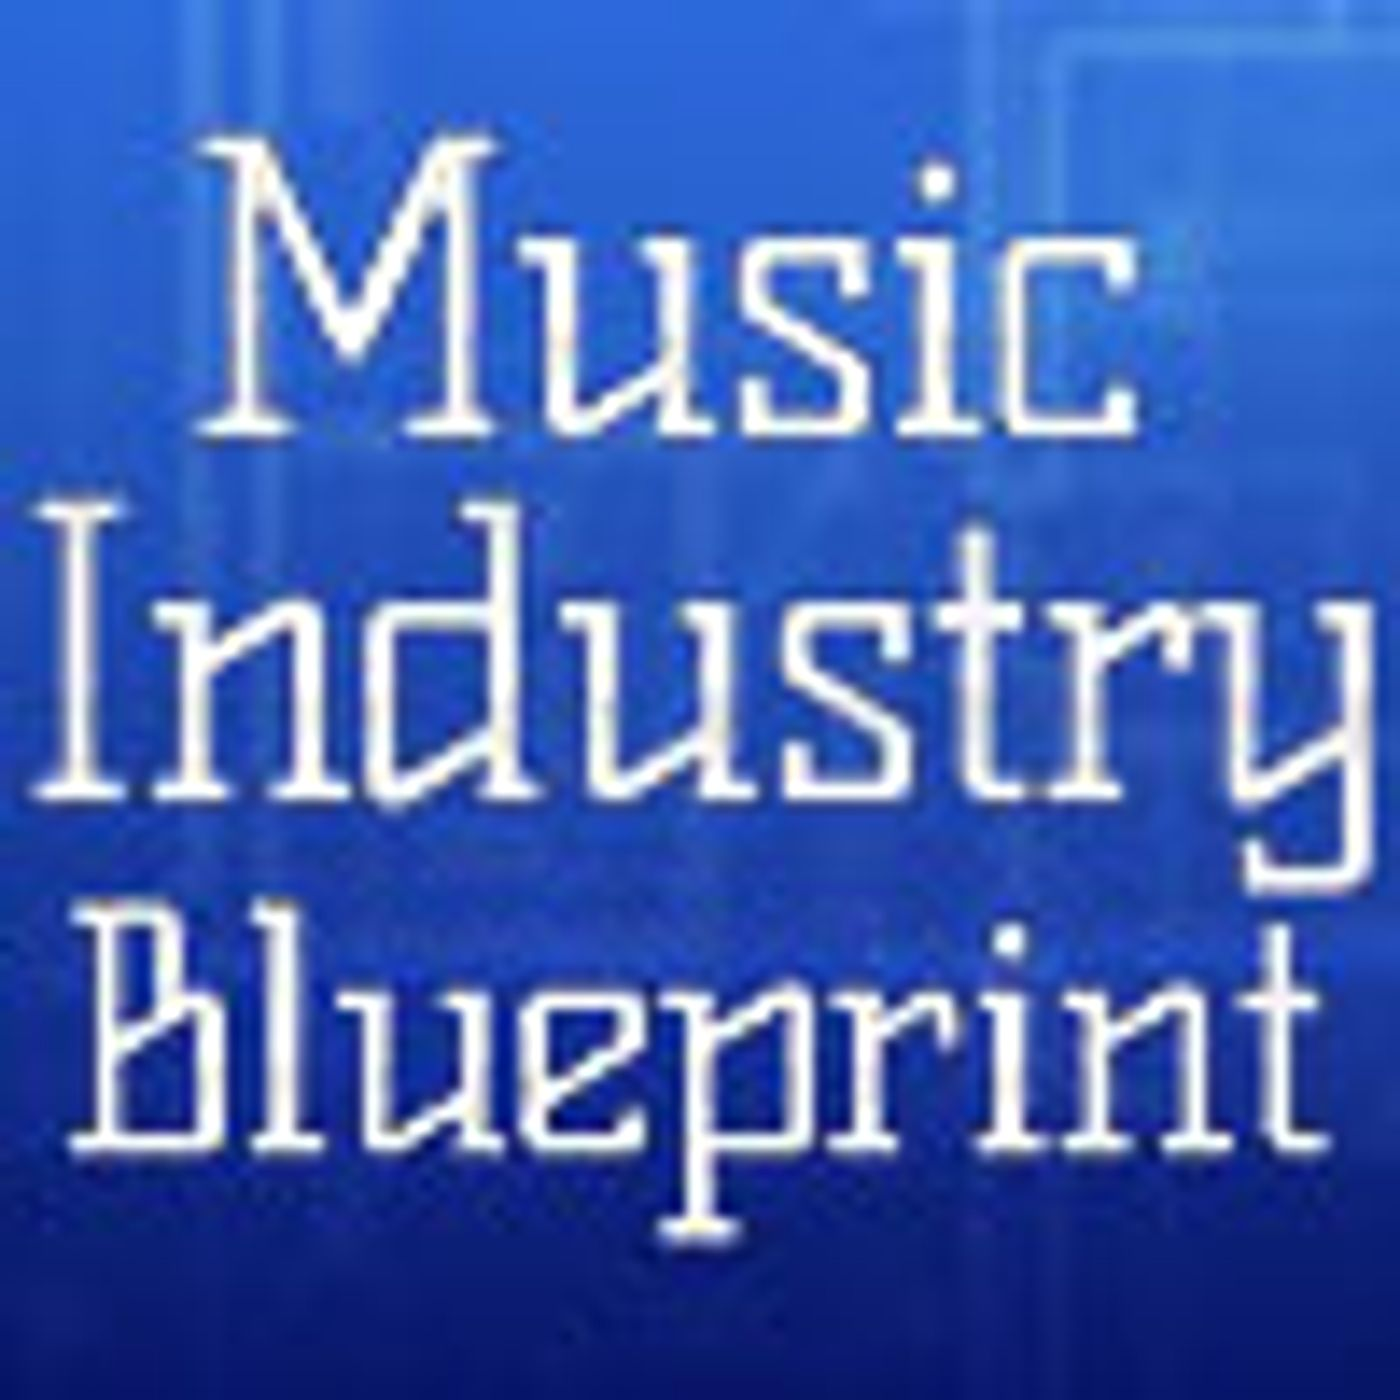 So You Want To Be In The Music Business!